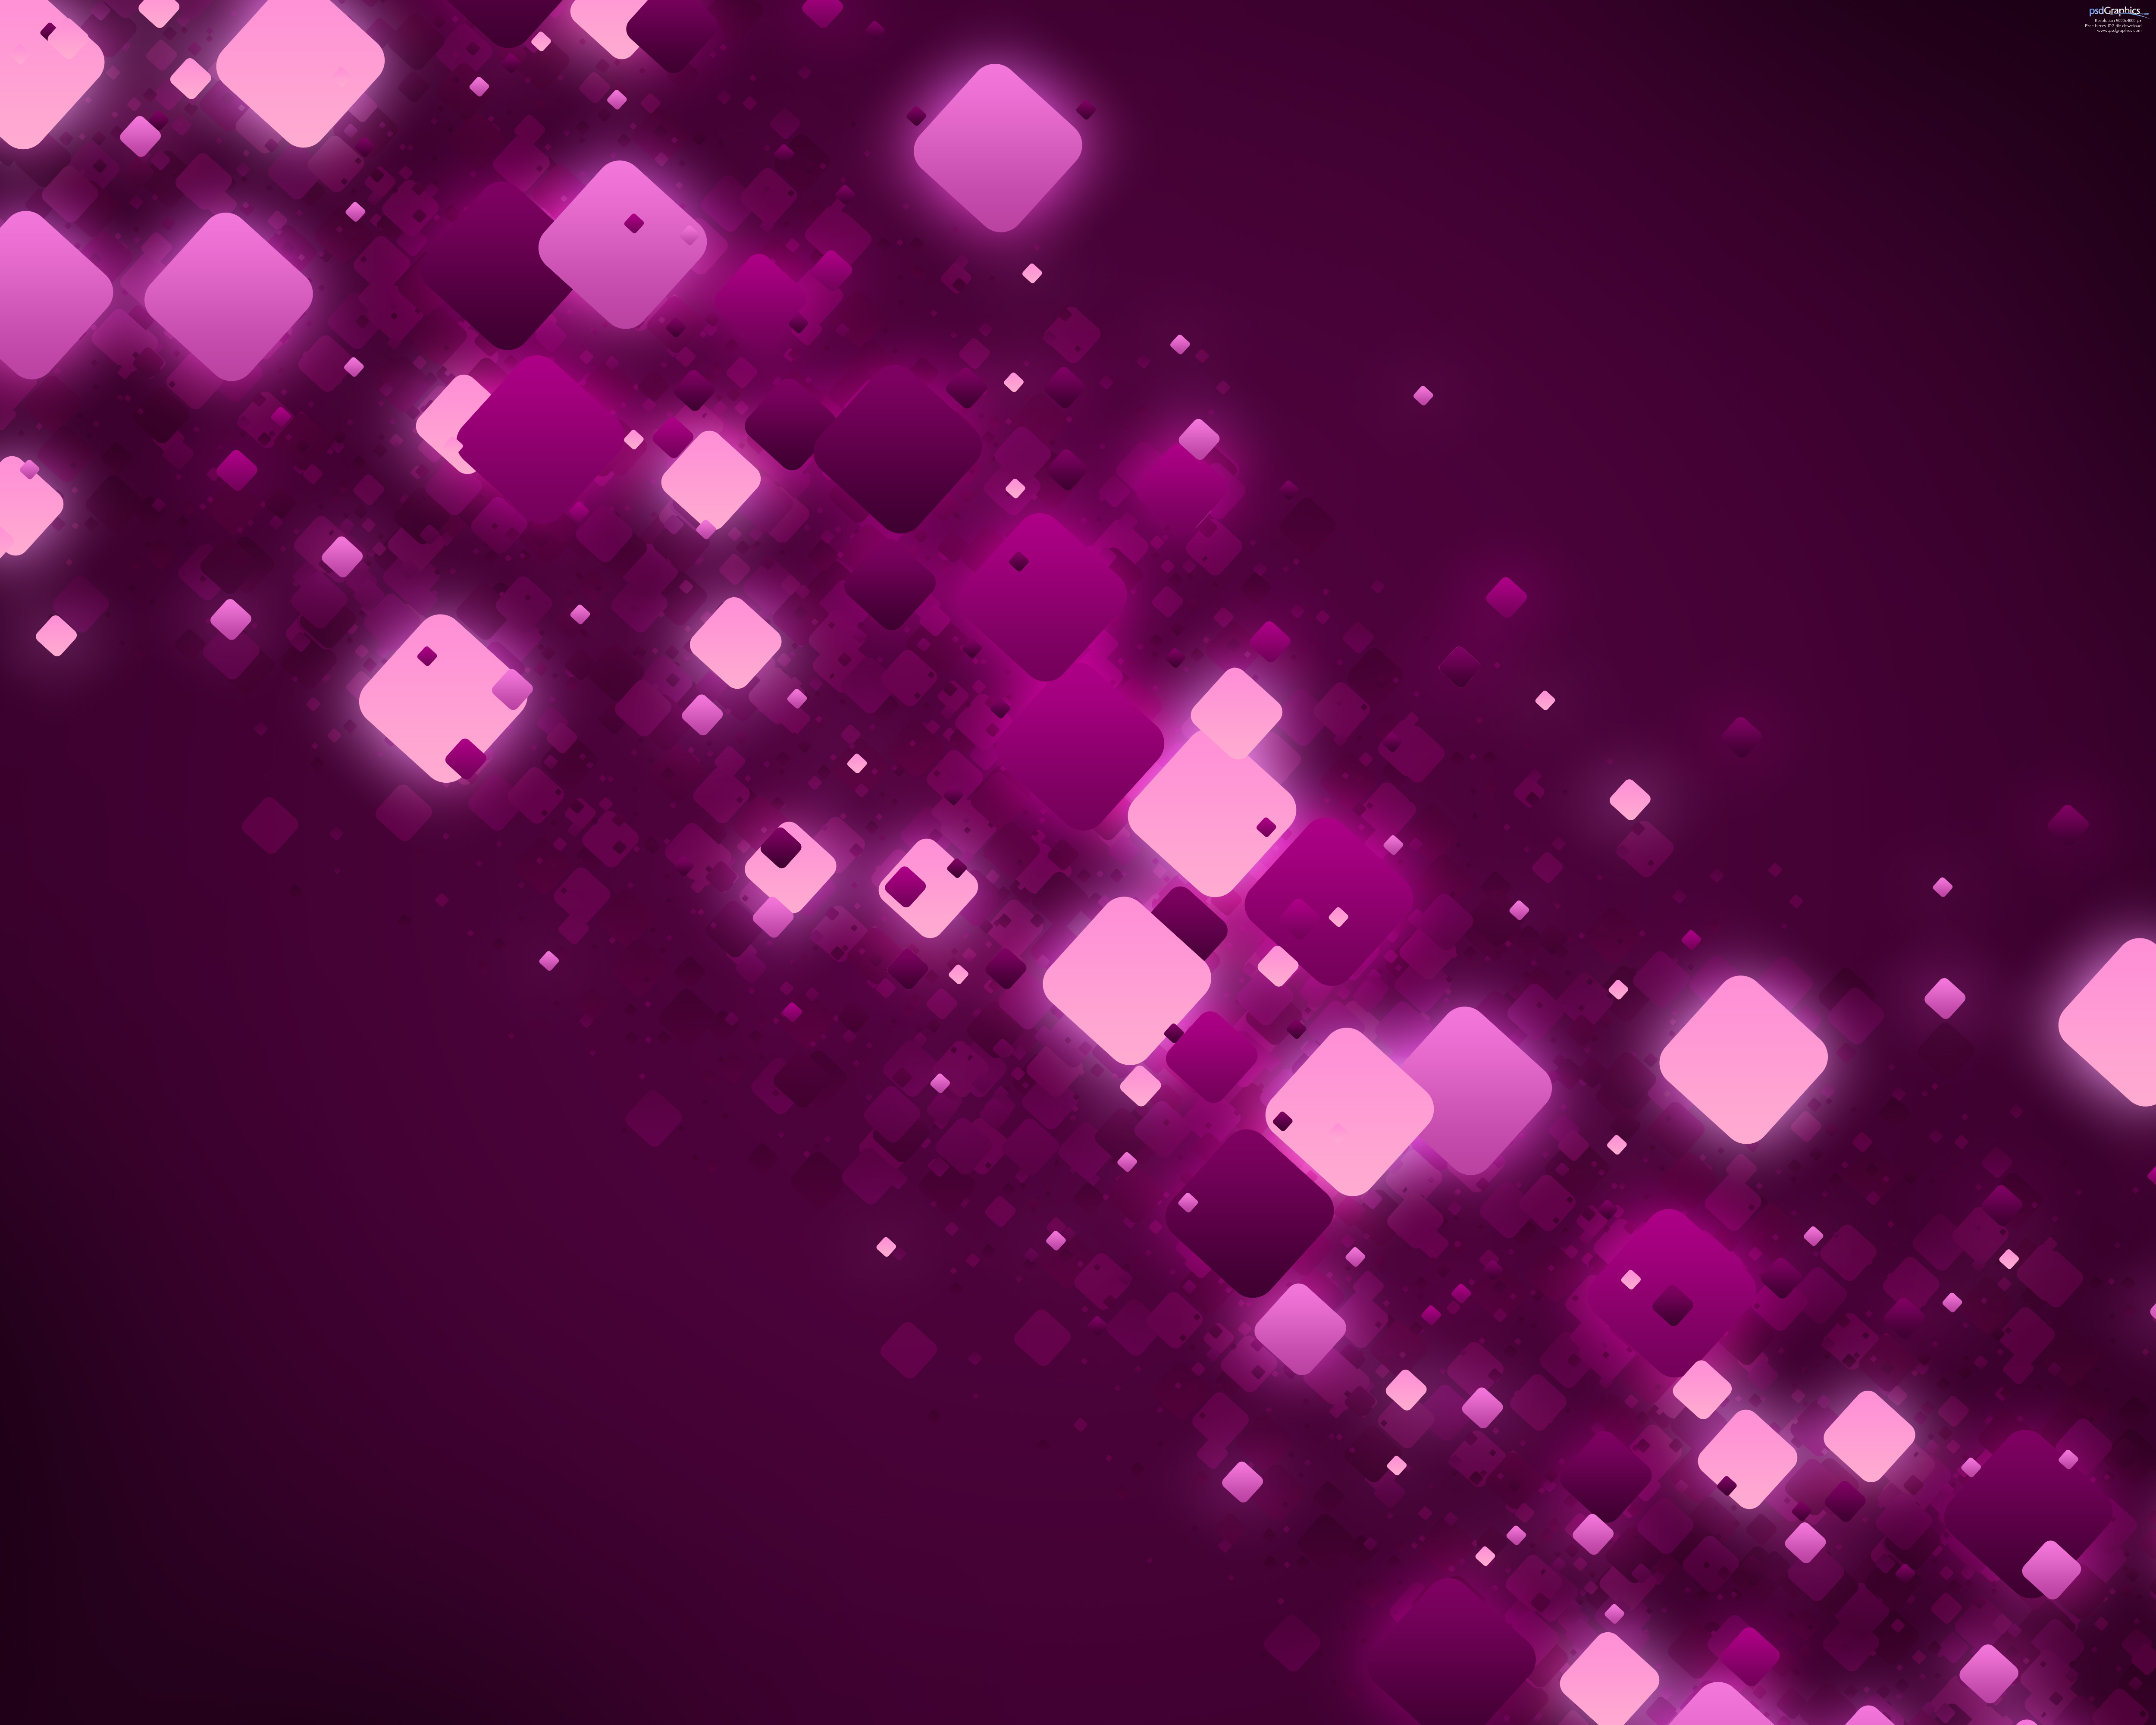 abstract backgrounds defocused lights colorful graphics advanced 5000x4000